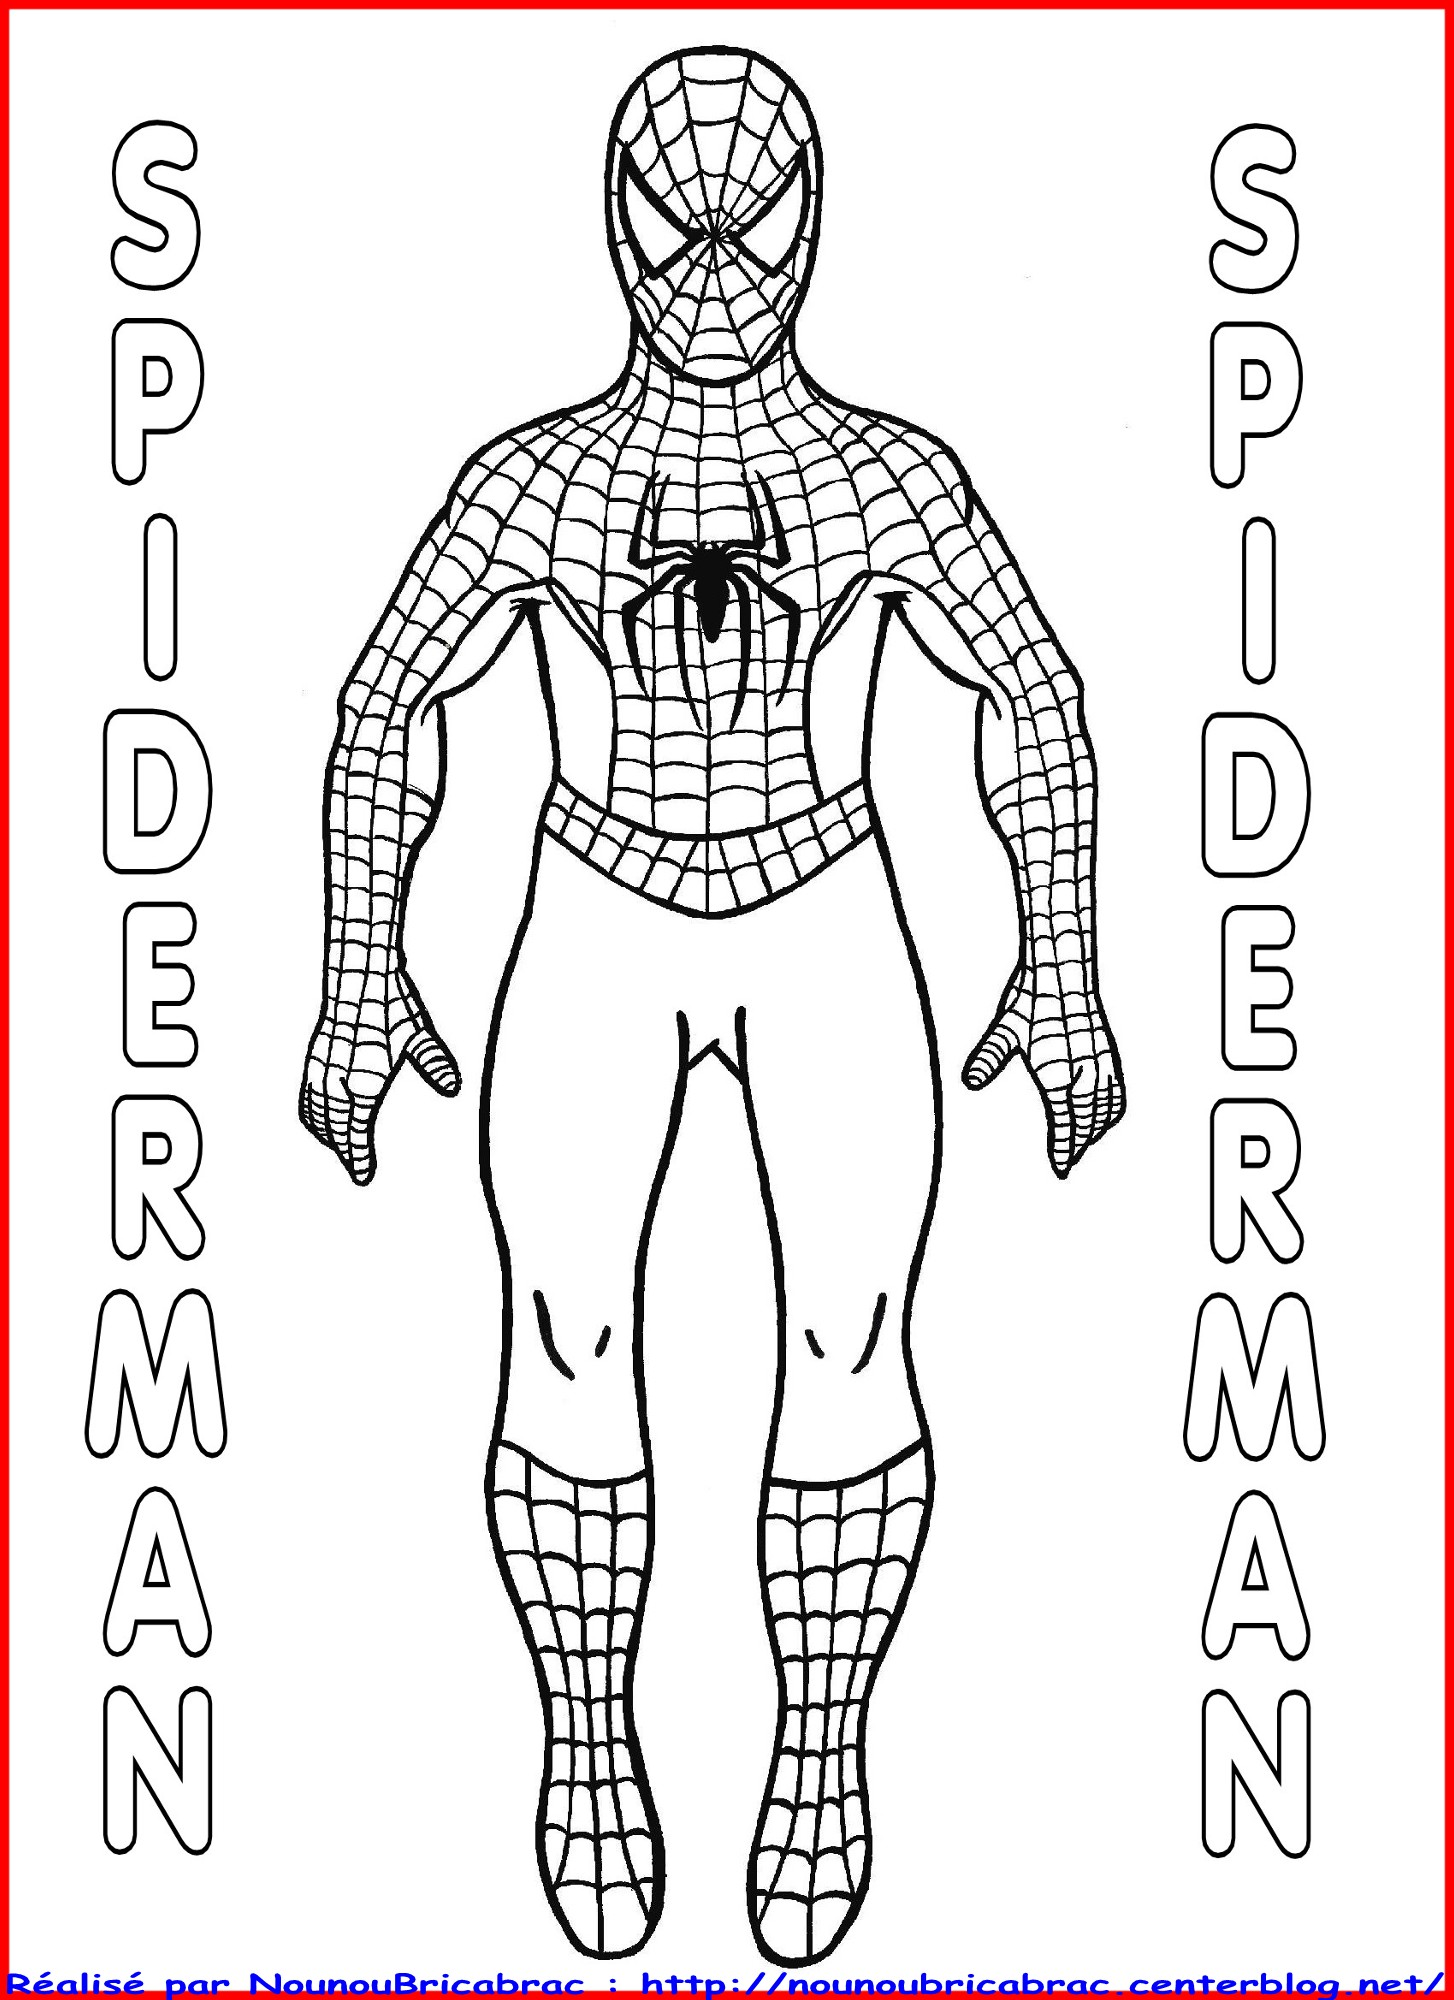 Beau Dessin A Colorier De Spiderman 4